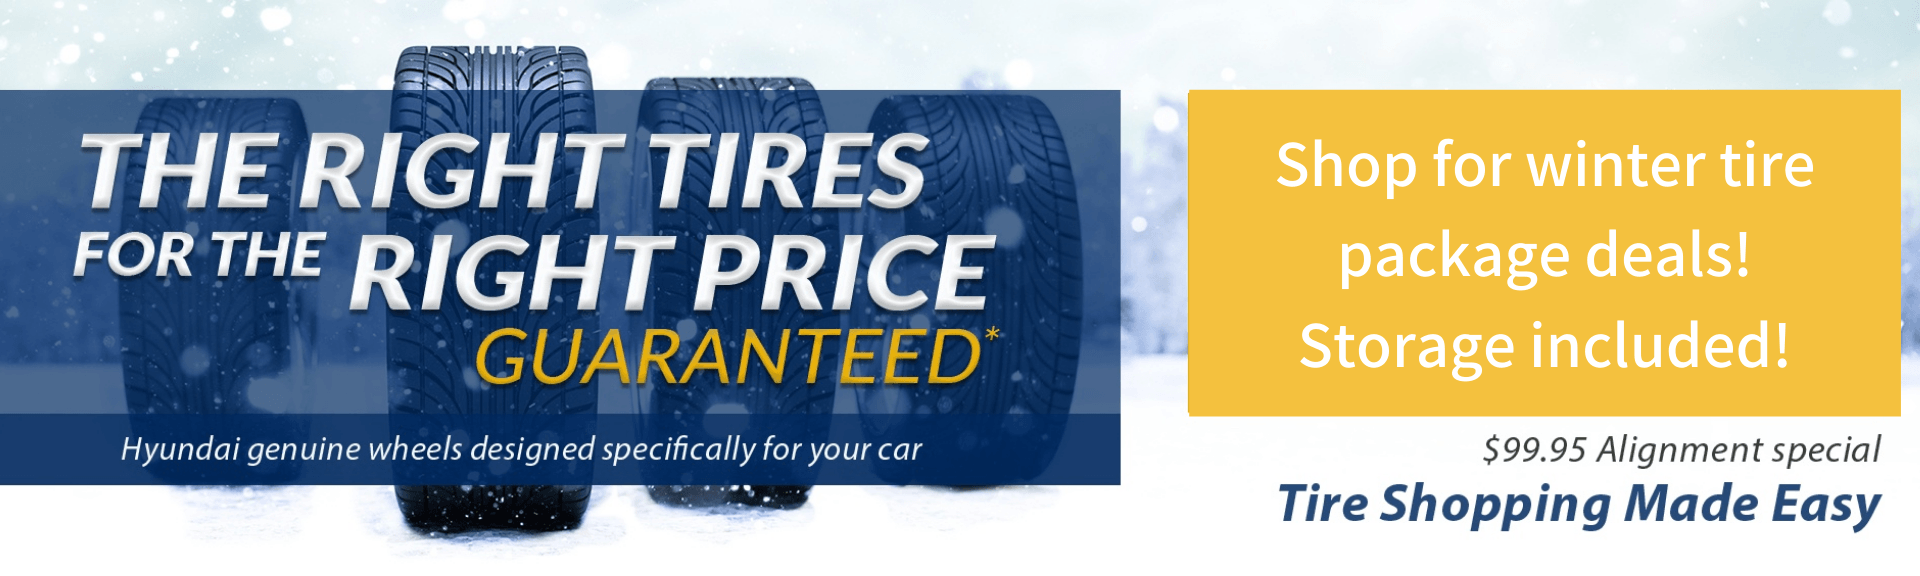 Shop for winter tire package deals! Storage included! (1)